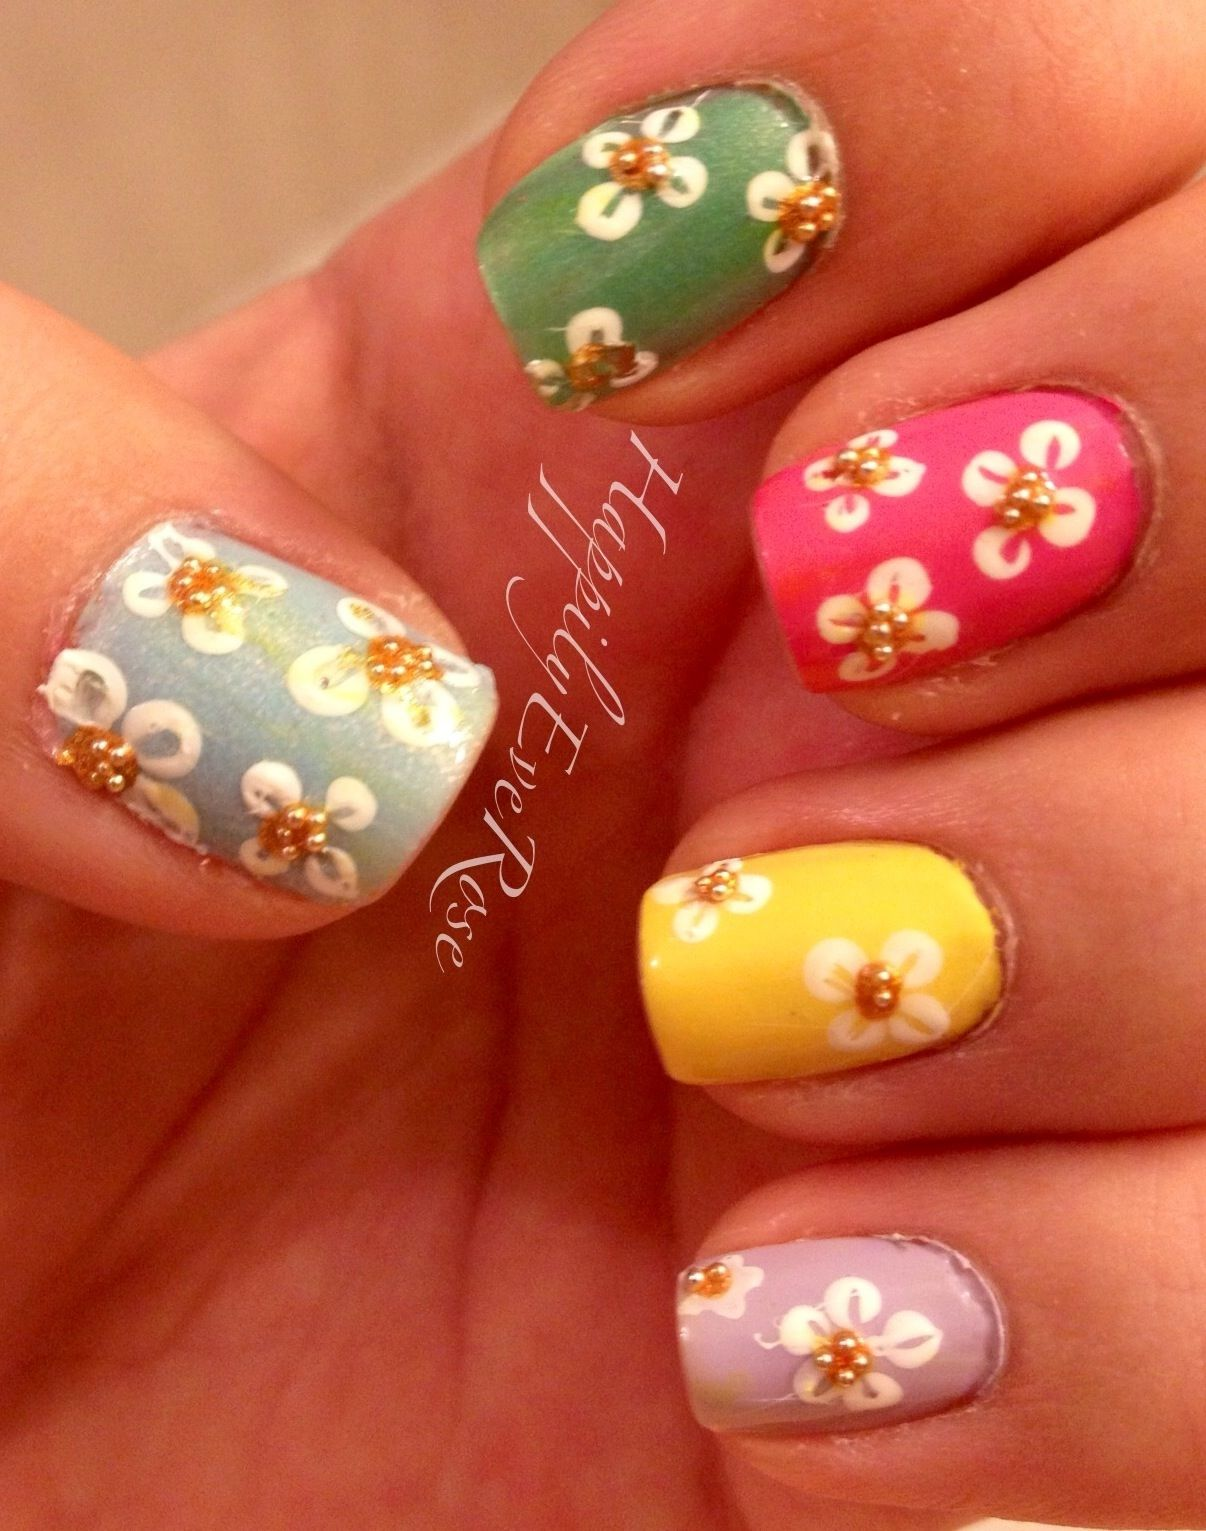 Nail Art Ideas » Spring Flower Nail Art - Pictures of Nail Art ...